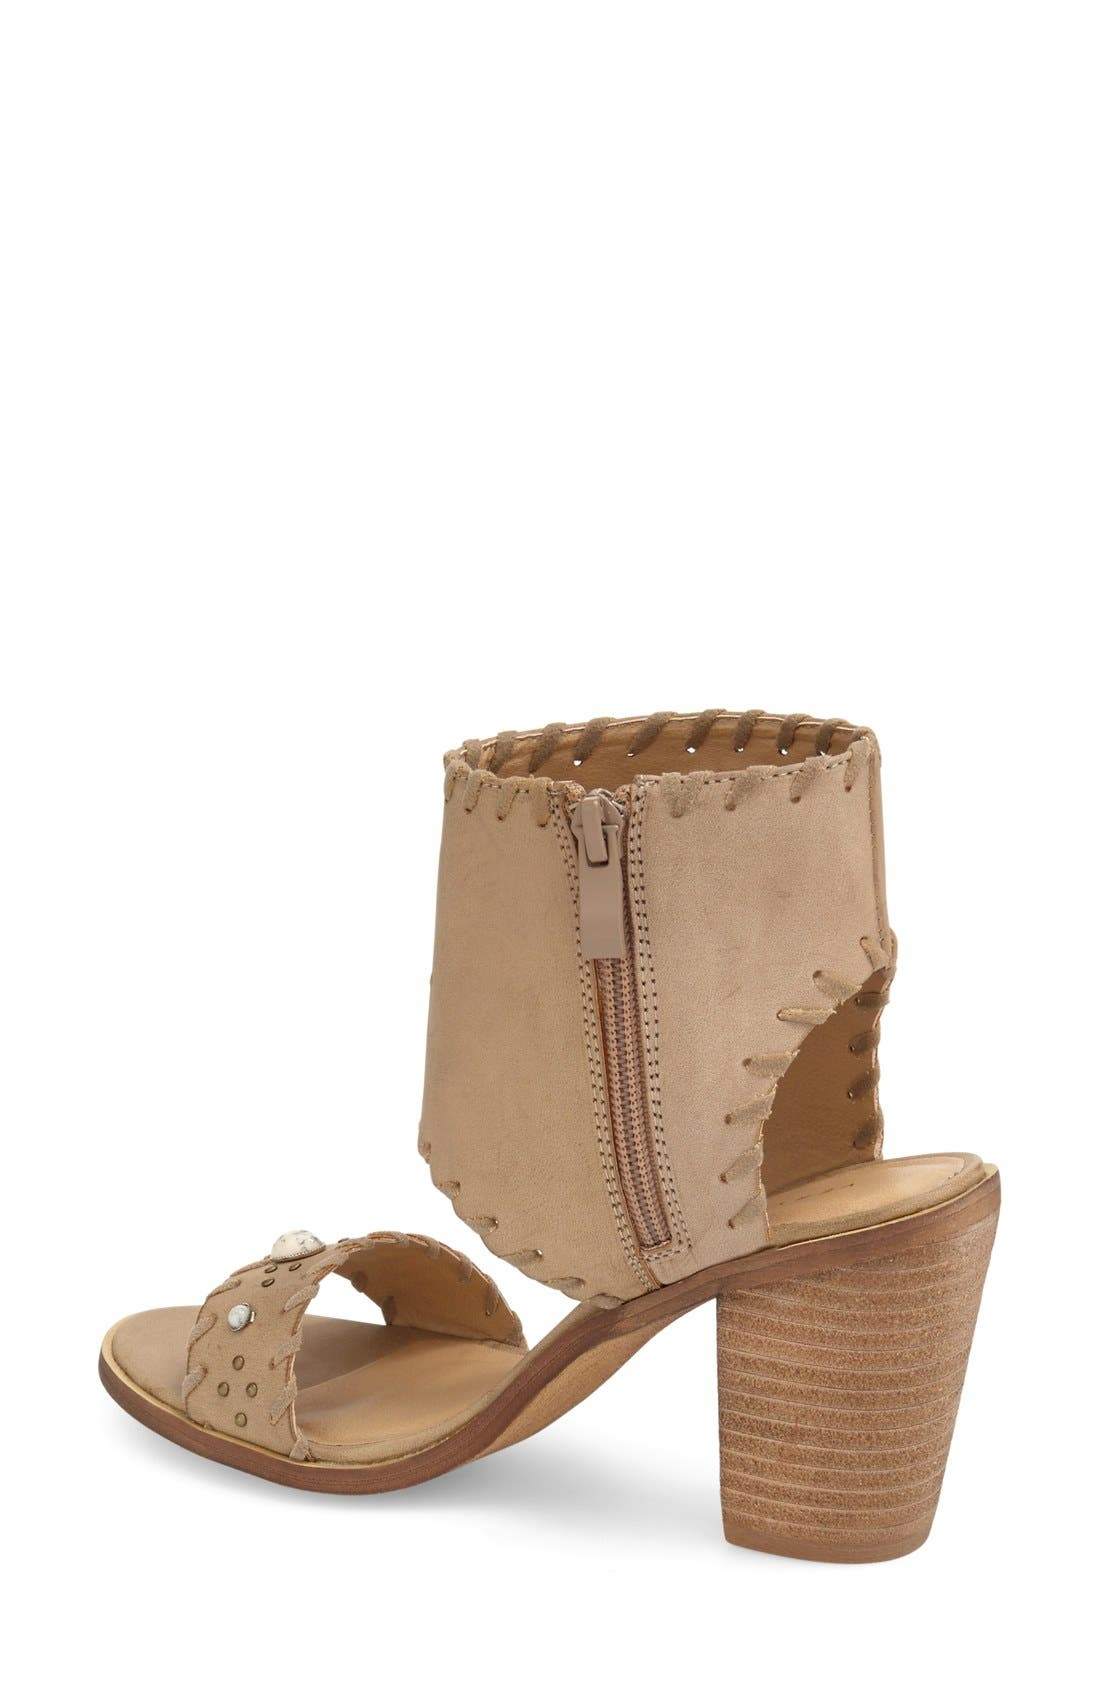 Alternate Image 2  - Very Volatile 'Boho' Tassel Cuff Sandal (Women)